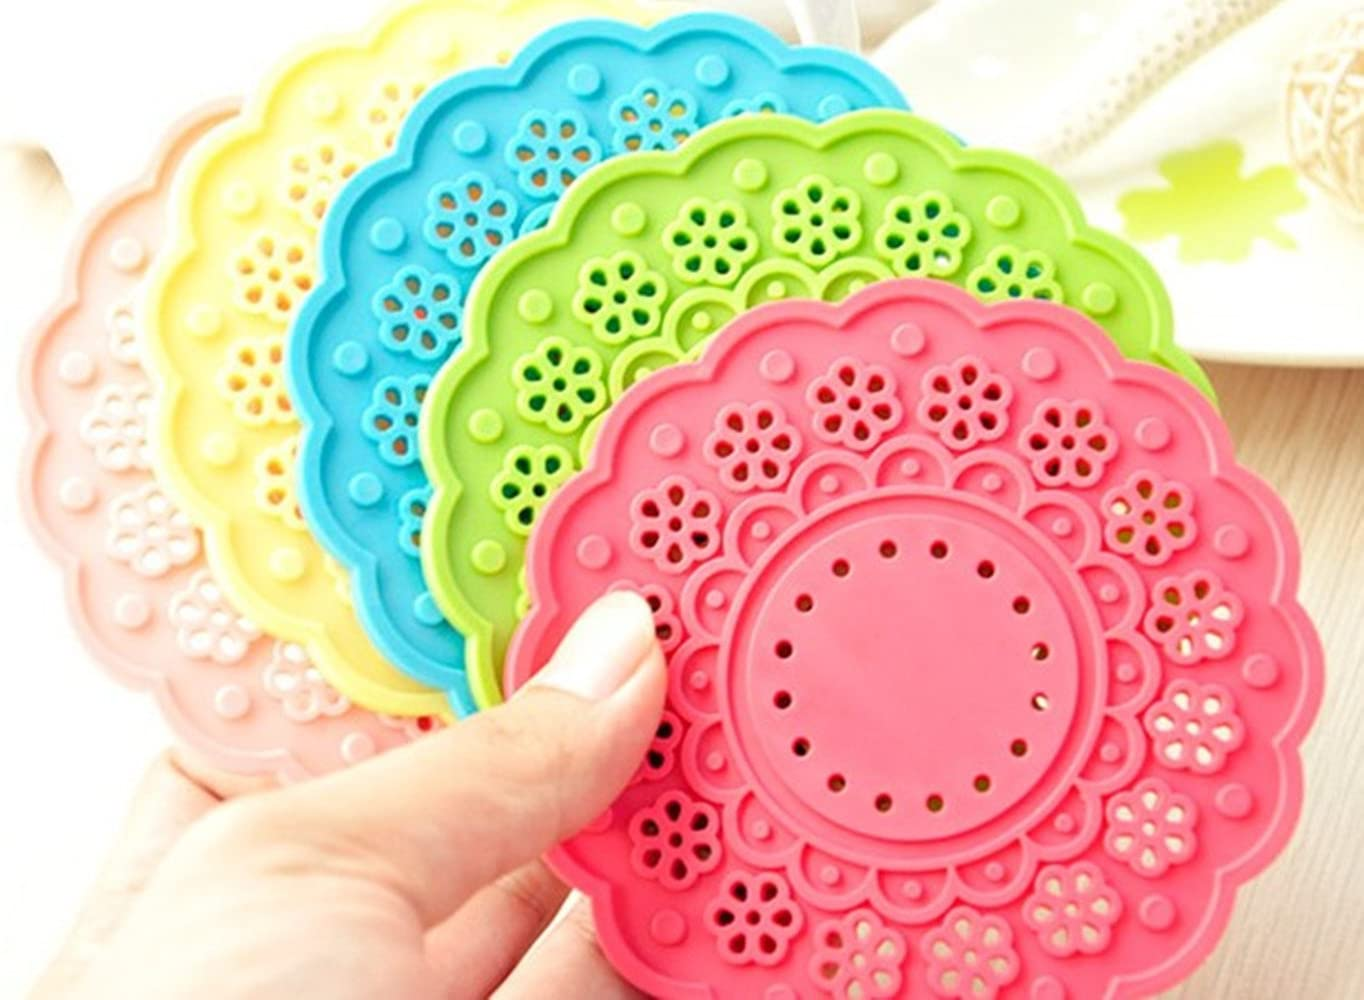 6 Pack MBODM Lace Silicone Coffee /& Tea Cup Mat Non-Slip Heat Resistant Silicone Coaster Kitchen